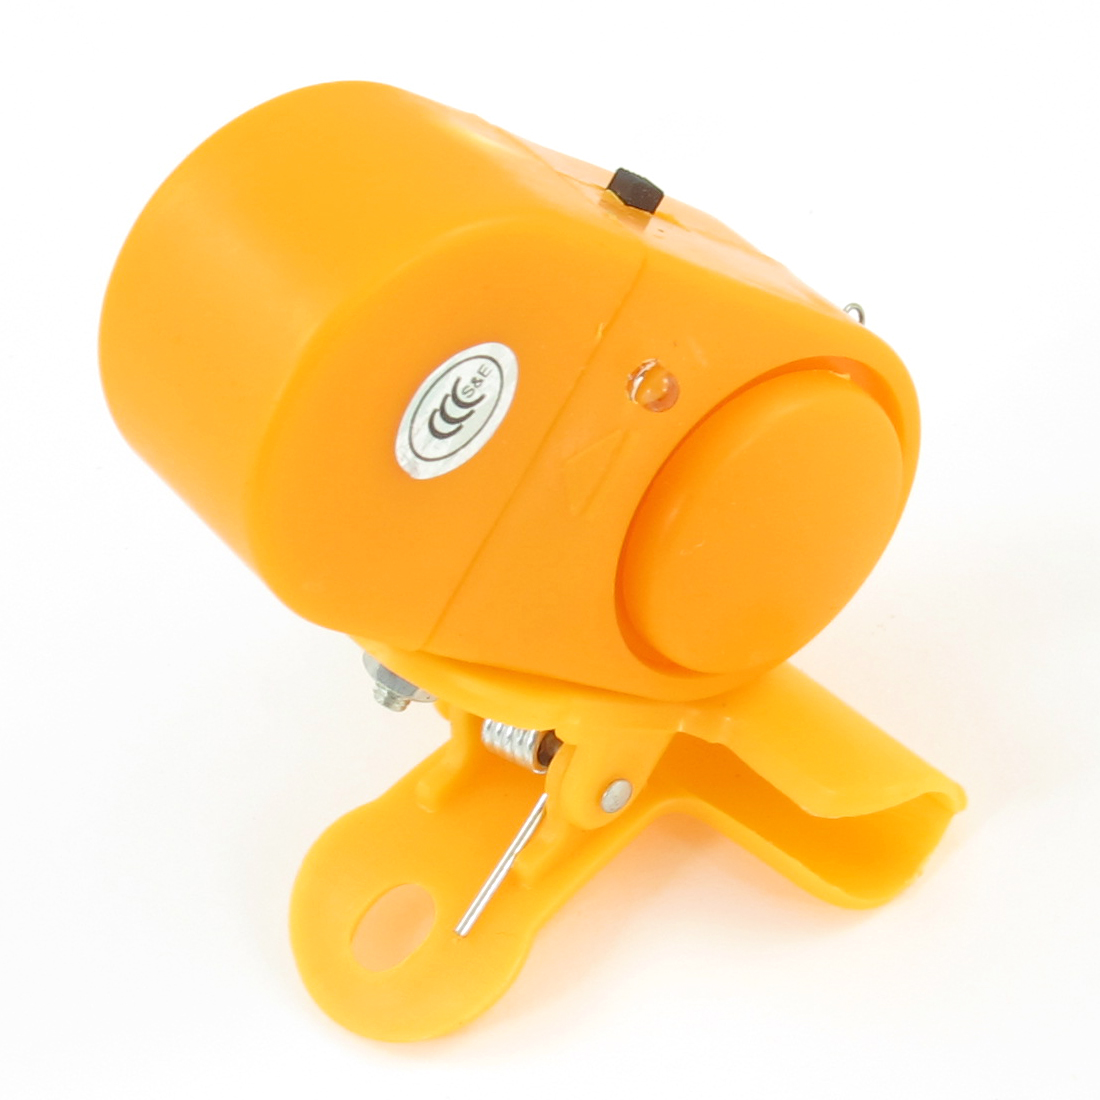 Portable LED Light Plastic Casing Angling Fishing Alarm w Clip Orange